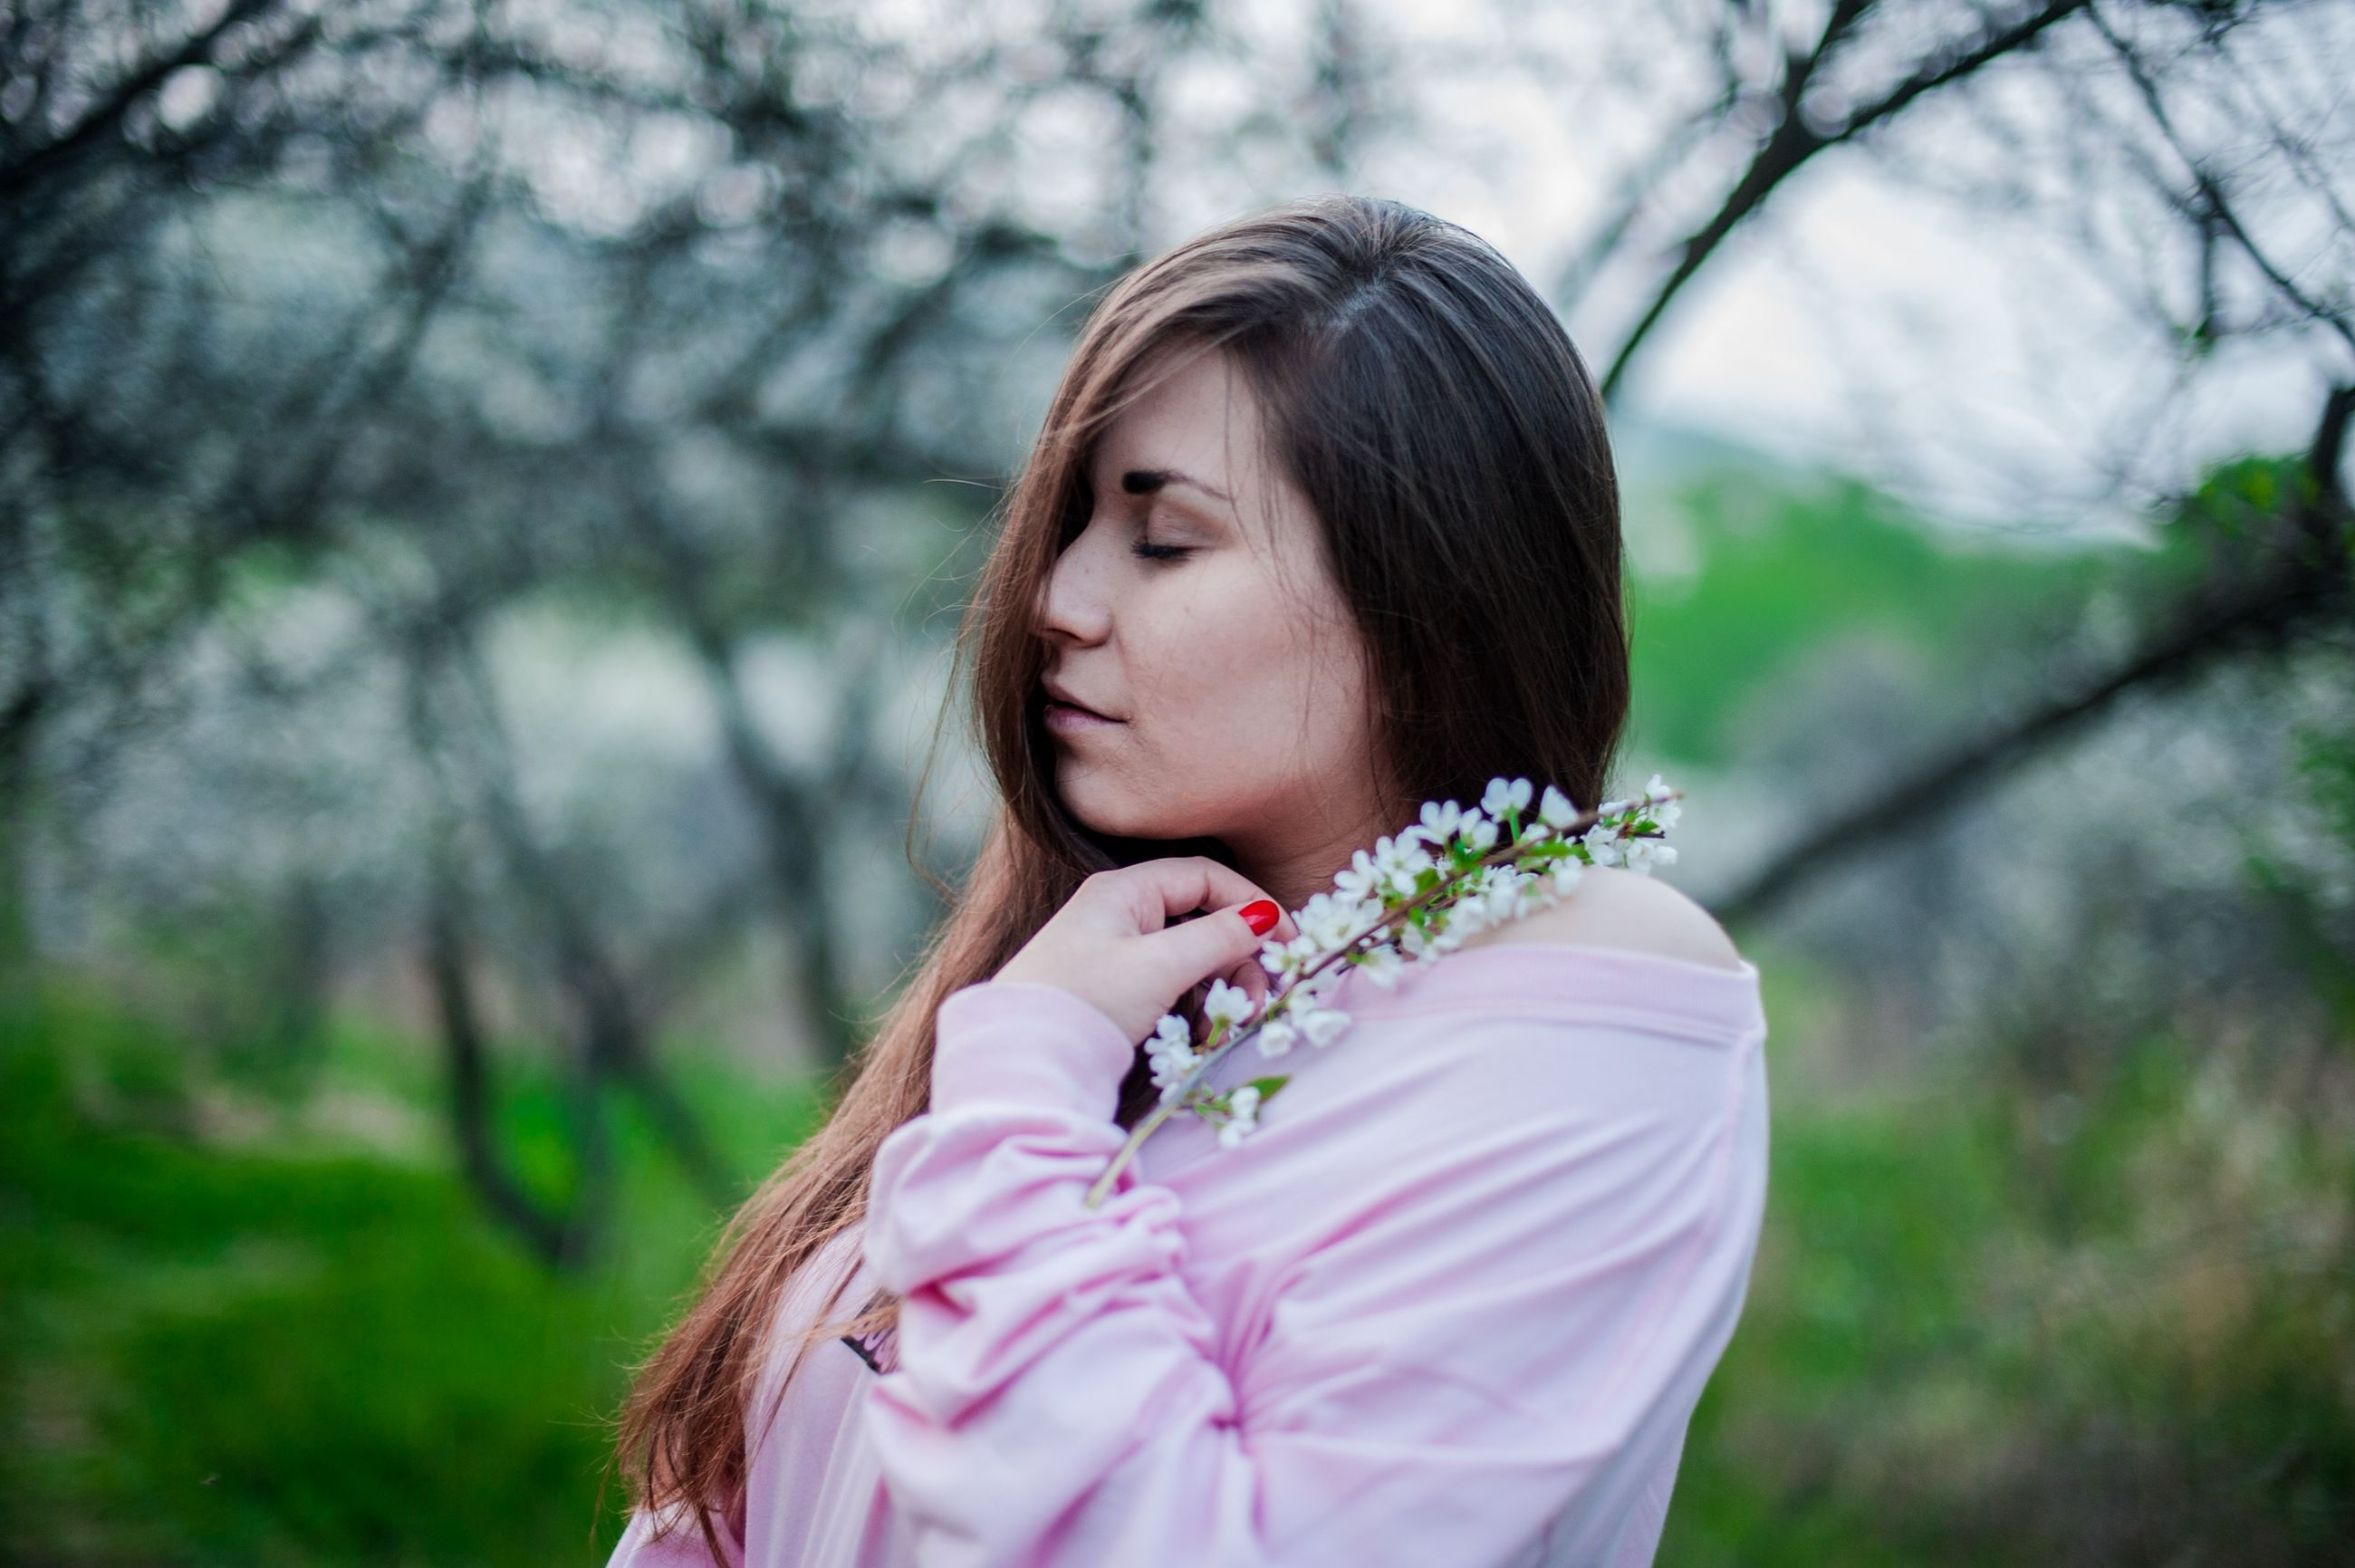 plant, women, one person, headshot, focus on foreground, tree, real people, portrait, hairstyle, lifestyles, long hair, leisure activity, nature, day, brown hair, pink color, flower, hair, outdoors, contemplation, beautiful woman